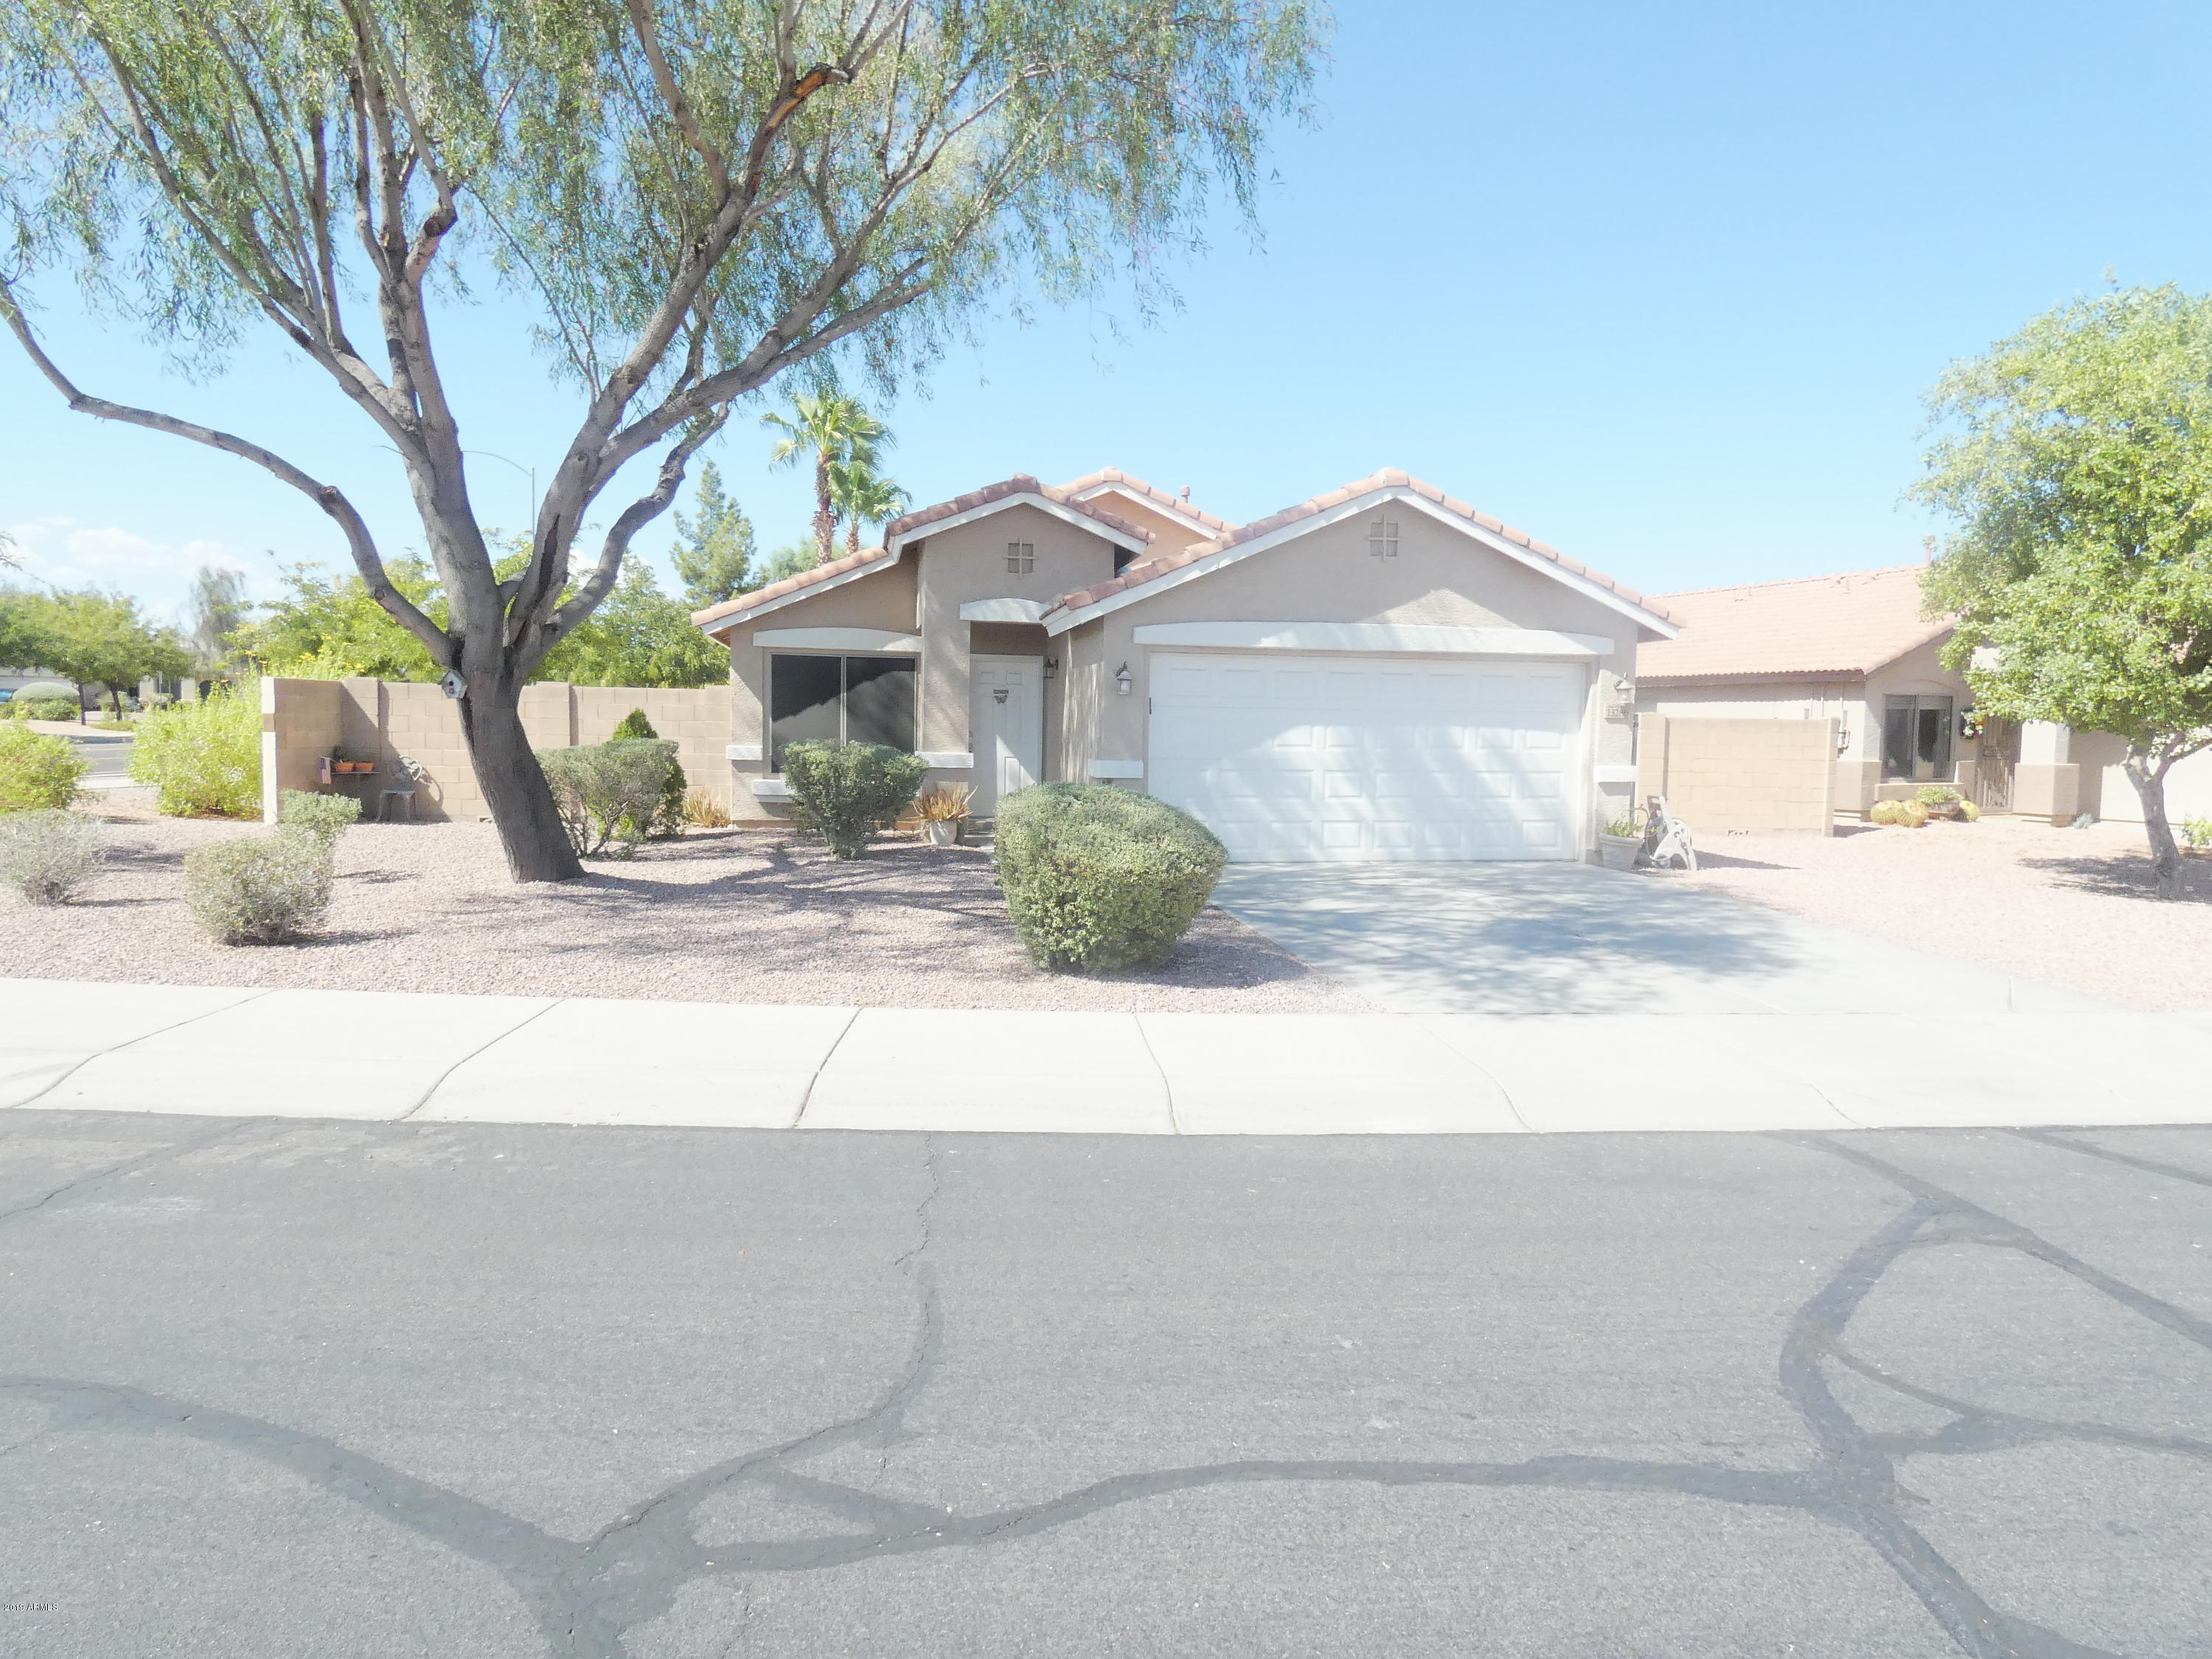 Dysart Unified District School District Homes for Sale